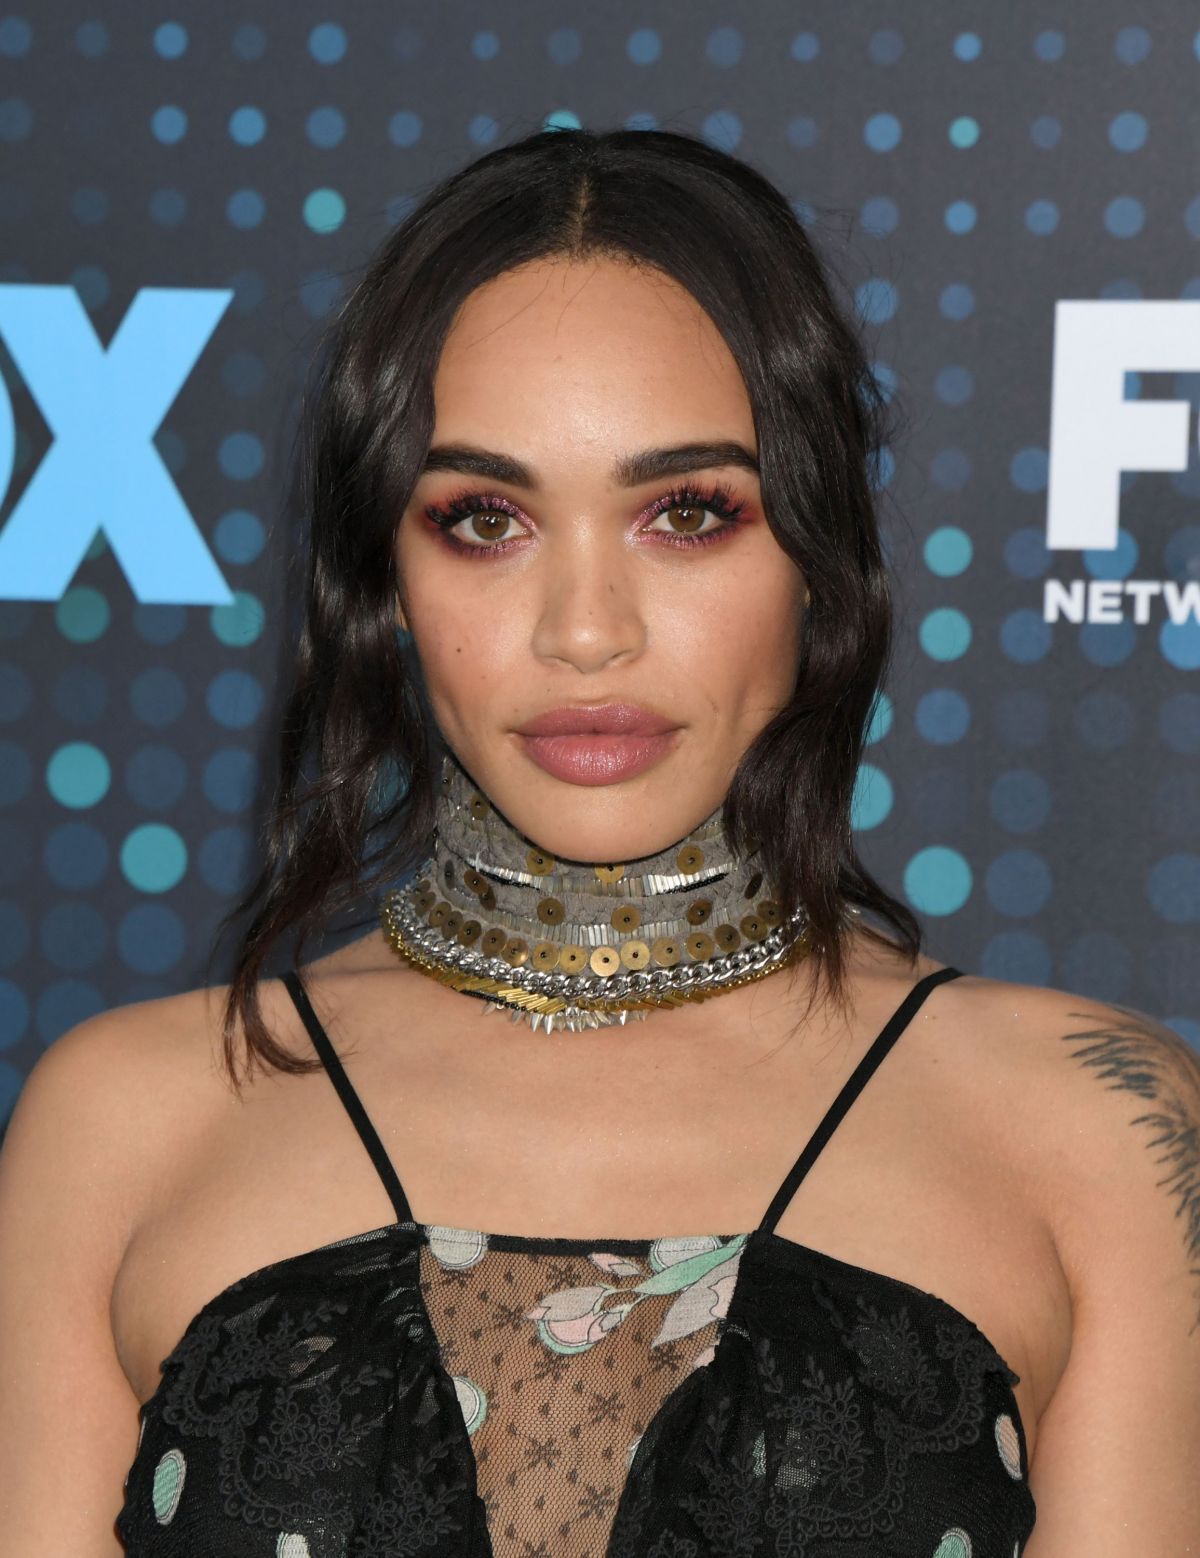 Fotos Cleopatra Coleman nude (89 photo), Topless, Cleavage, Feet, cameltoe 2017